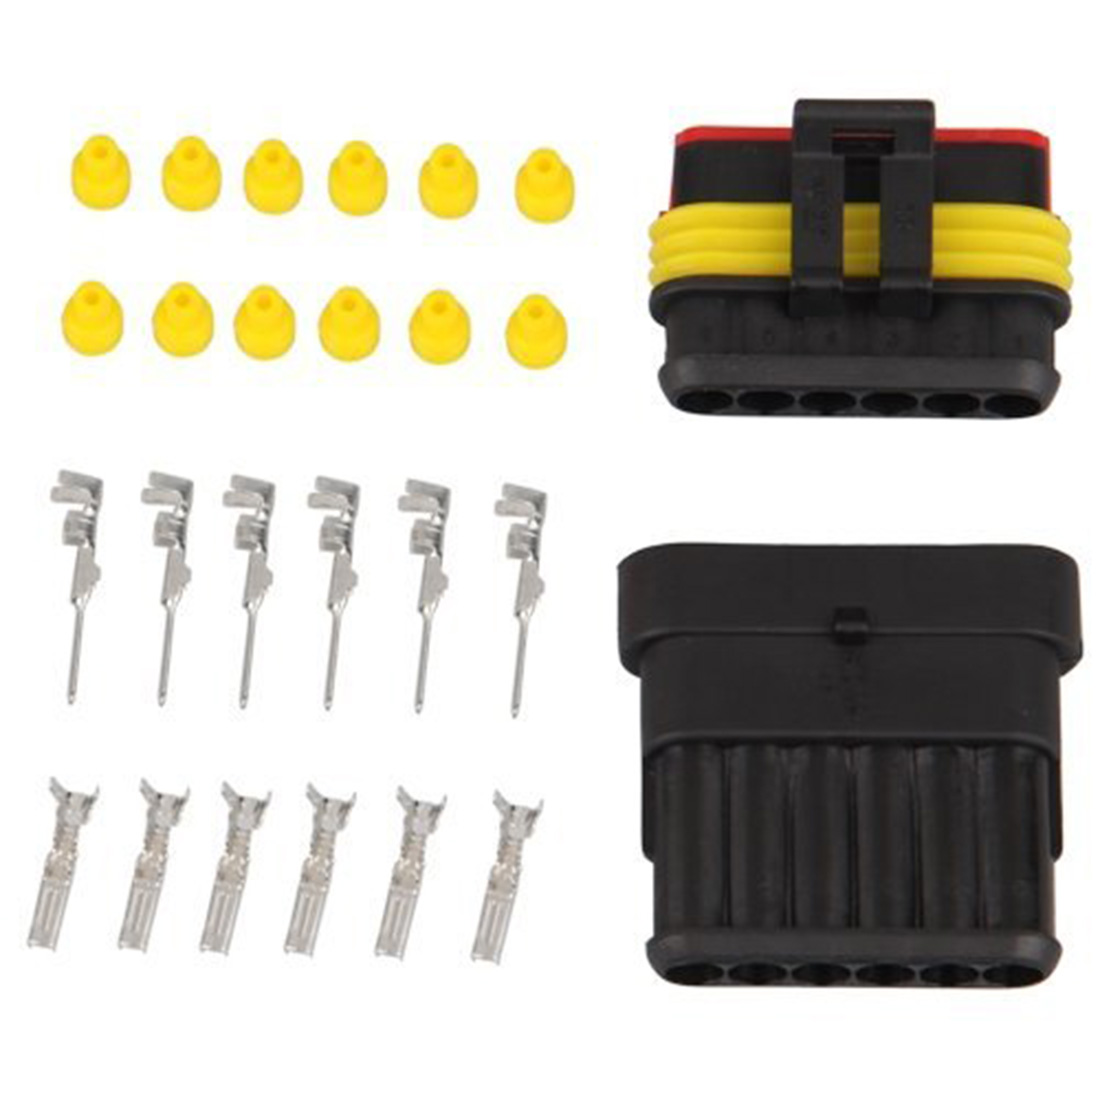 30sets Lot Car Waterproof 18mm 8pin Male And Female Electrical Wire New 2 Pin Connector Plug Awg Motorcycle Hot Sale Kits 6 Way